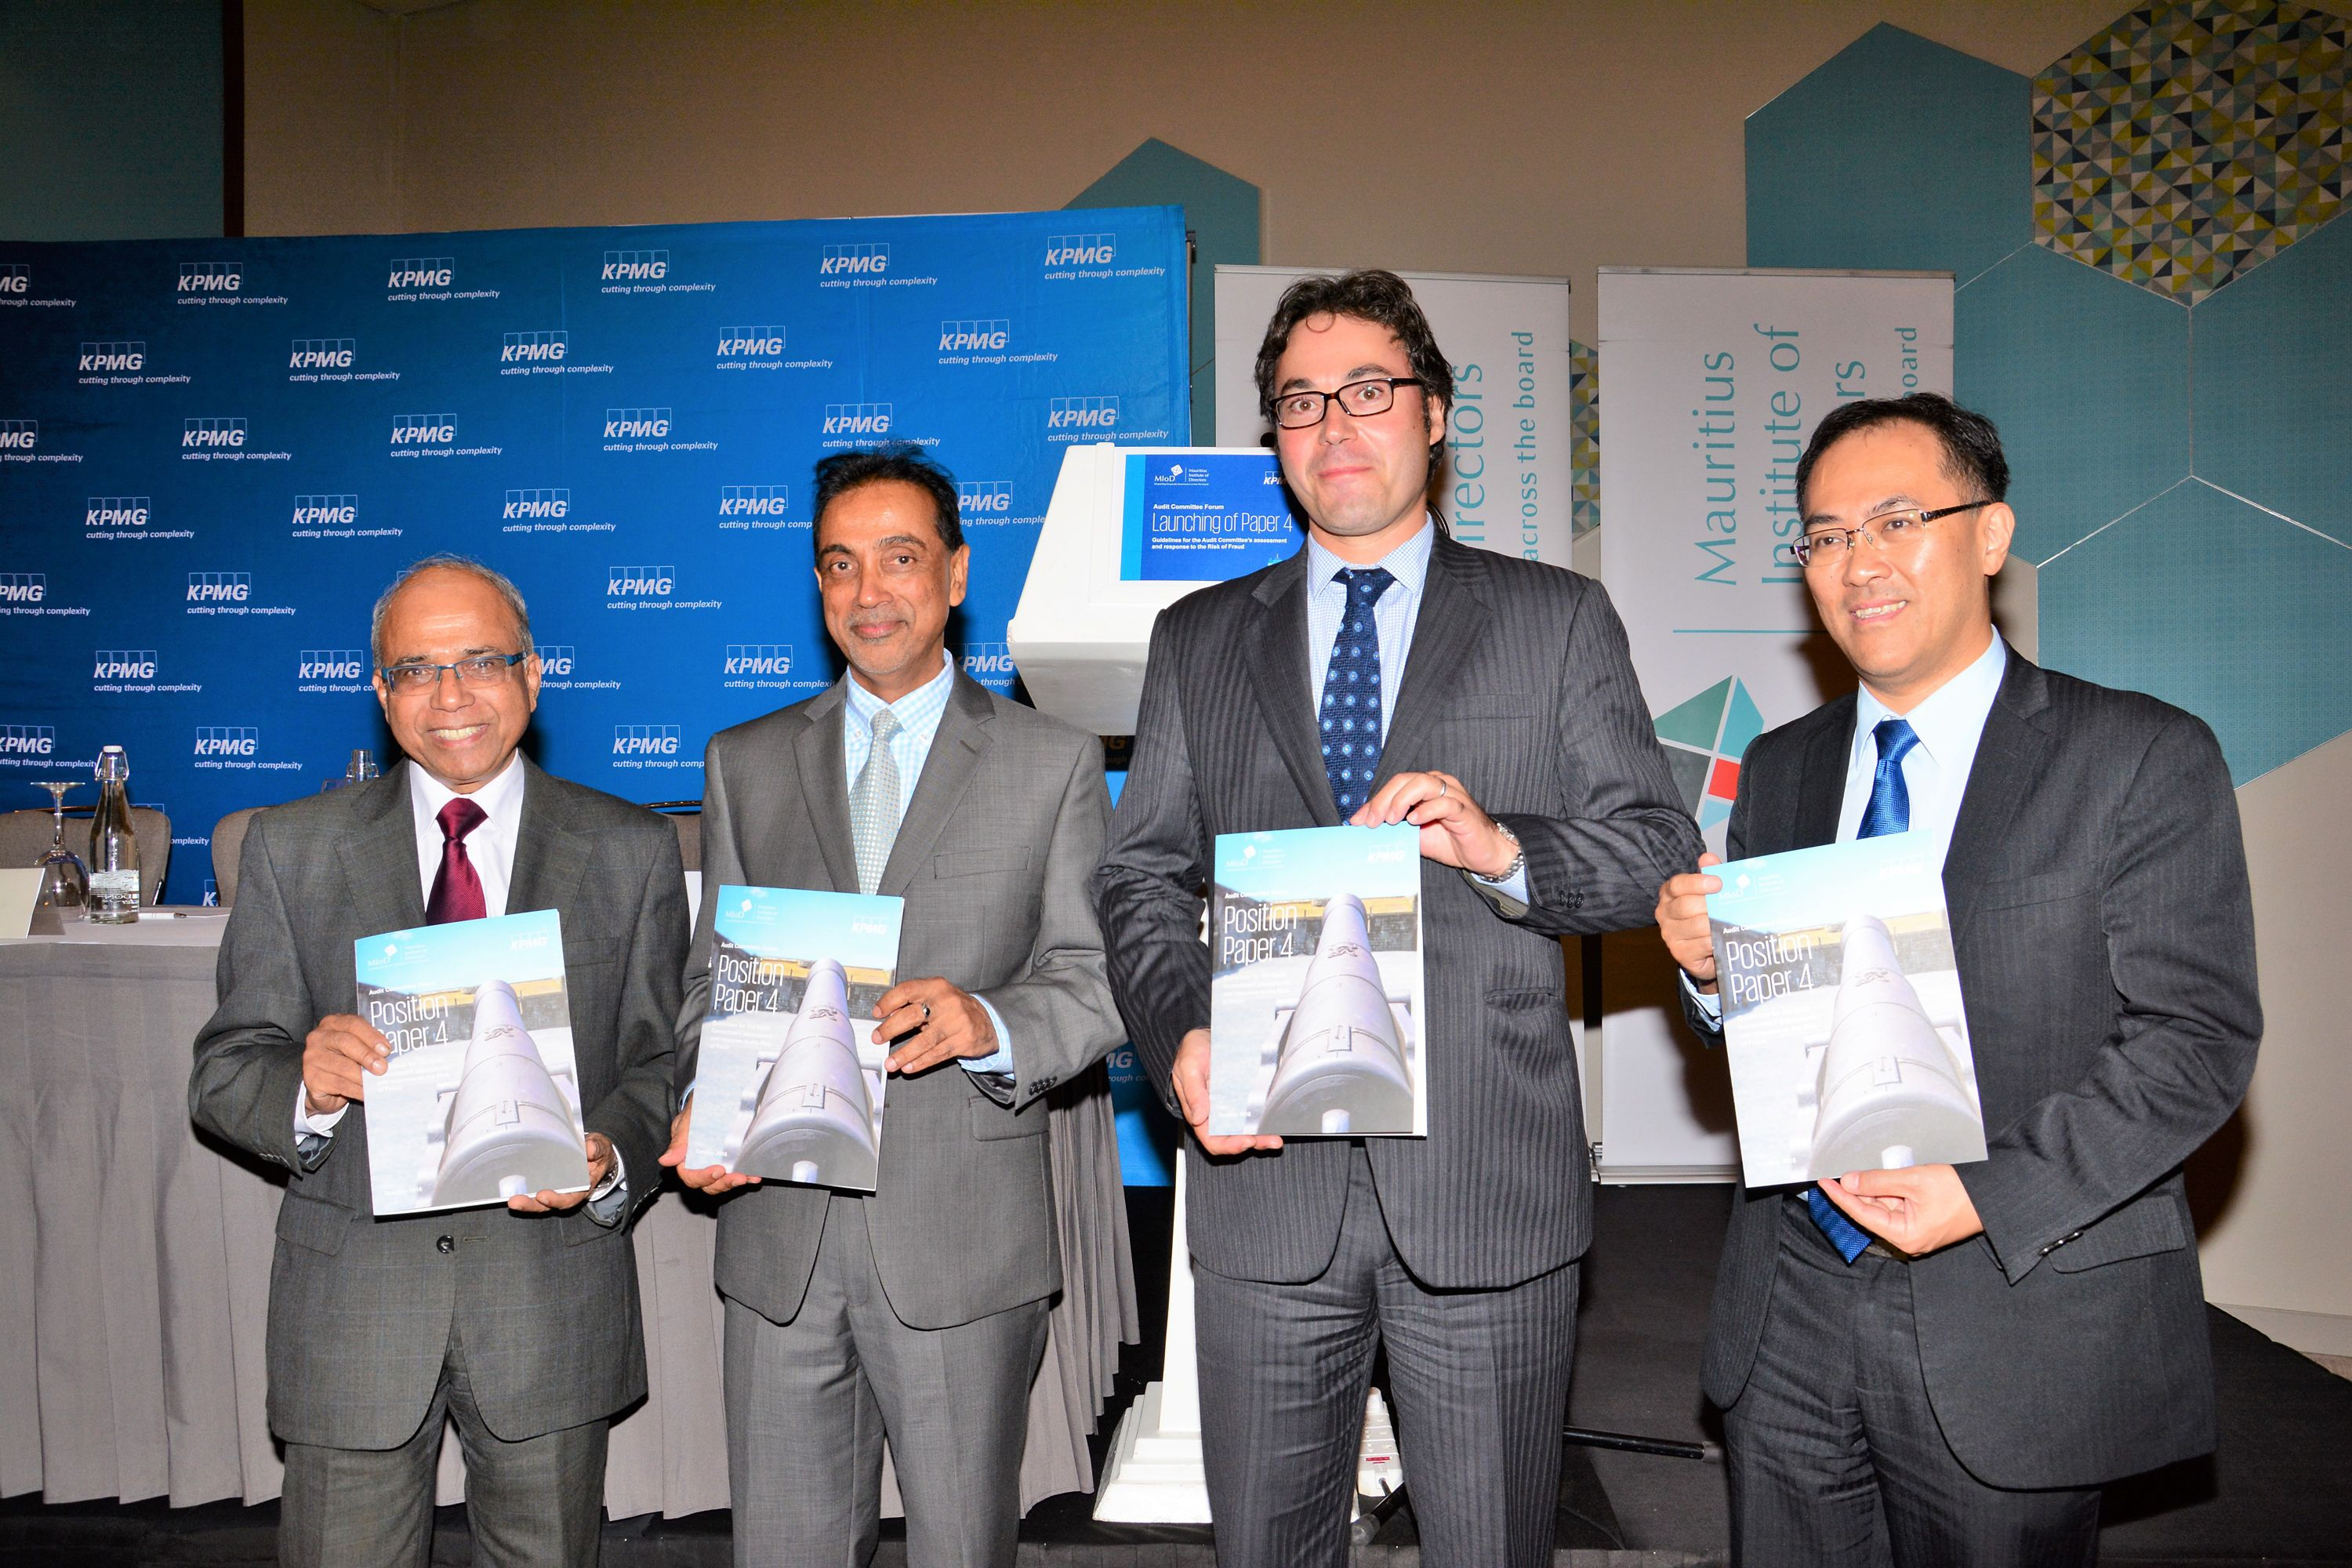 Launching of ACF Position Paper 4